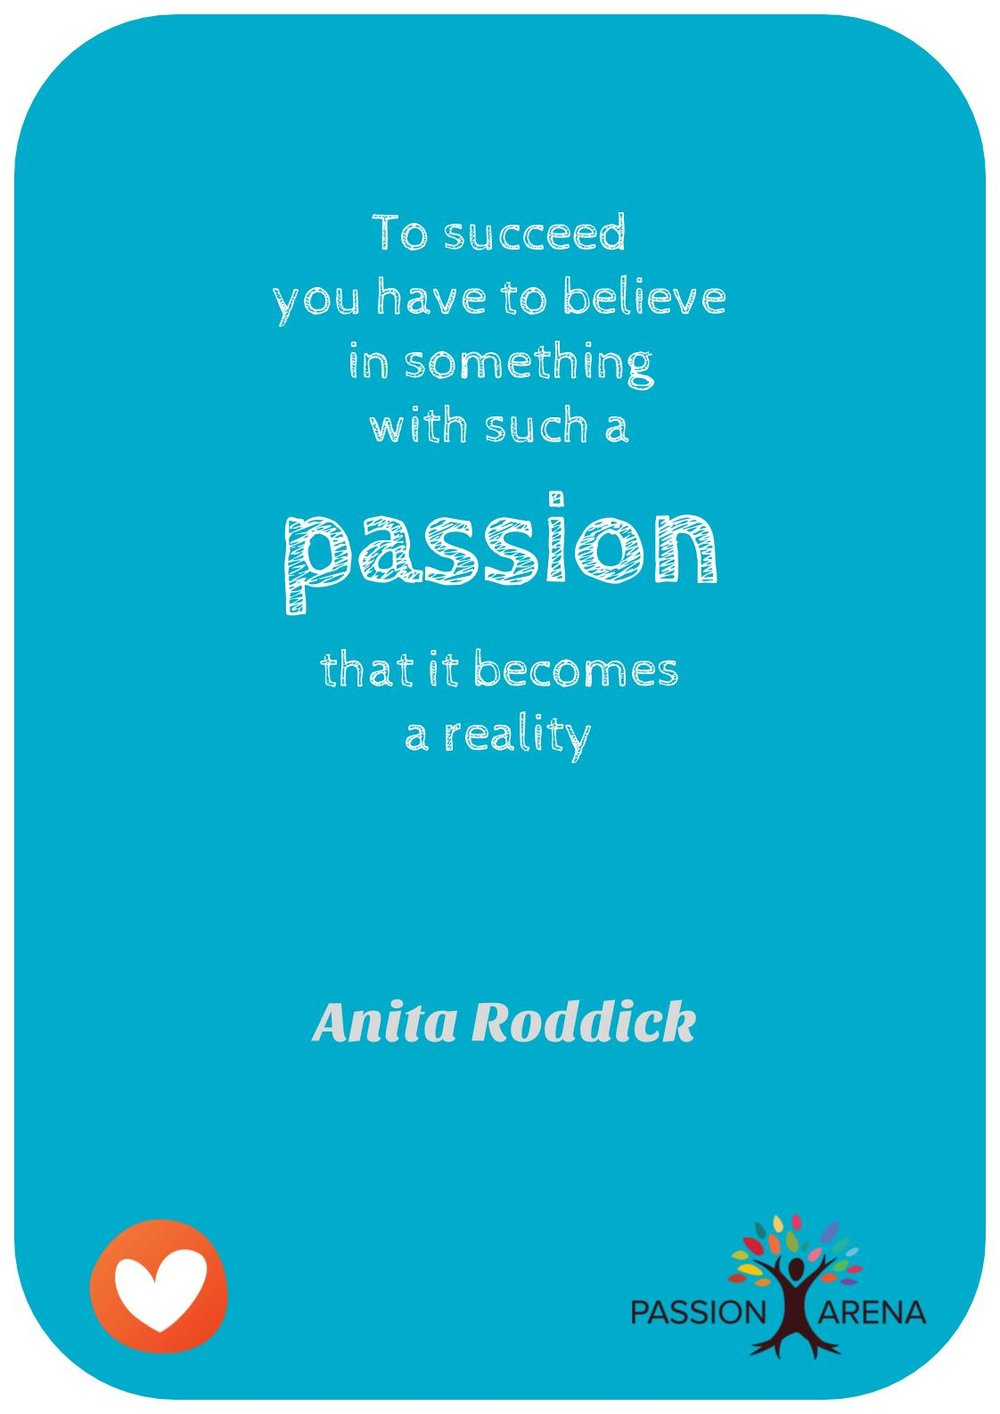 Anita Roddick – Passion Quote